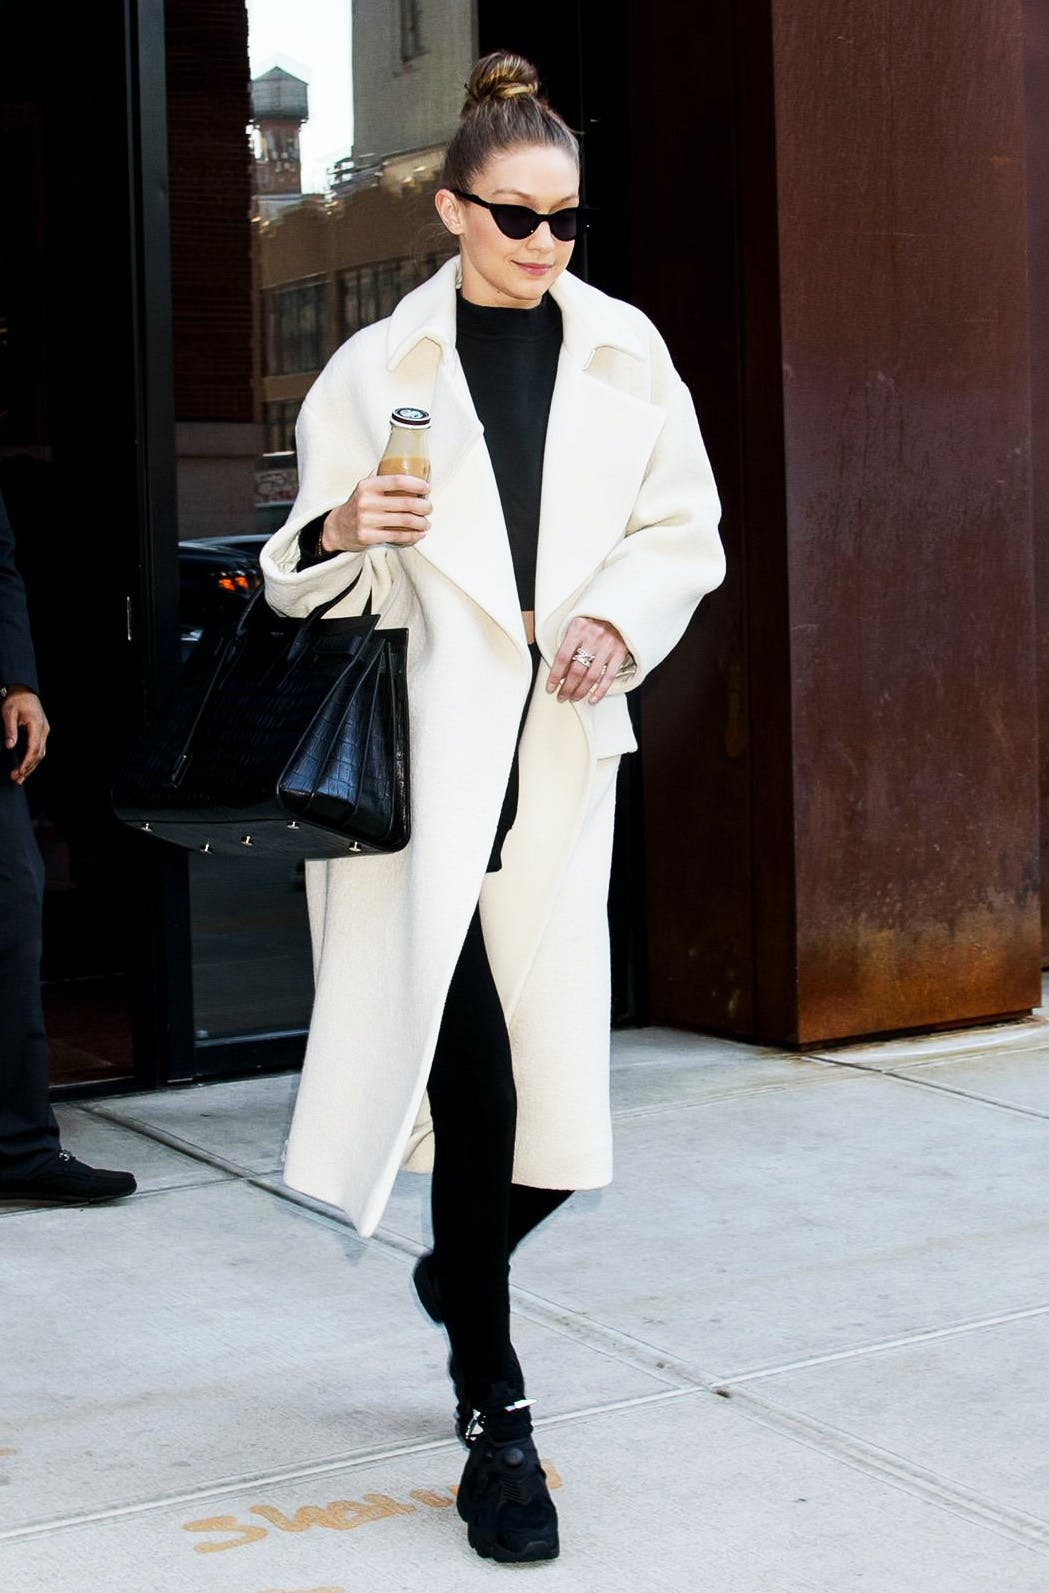 1a709fc55c90 A white coat looks effortlessly elegant worn over an all black outfit. Keep  the contrast running throughout the look by pairing a ladylike handbag and  sharp ...